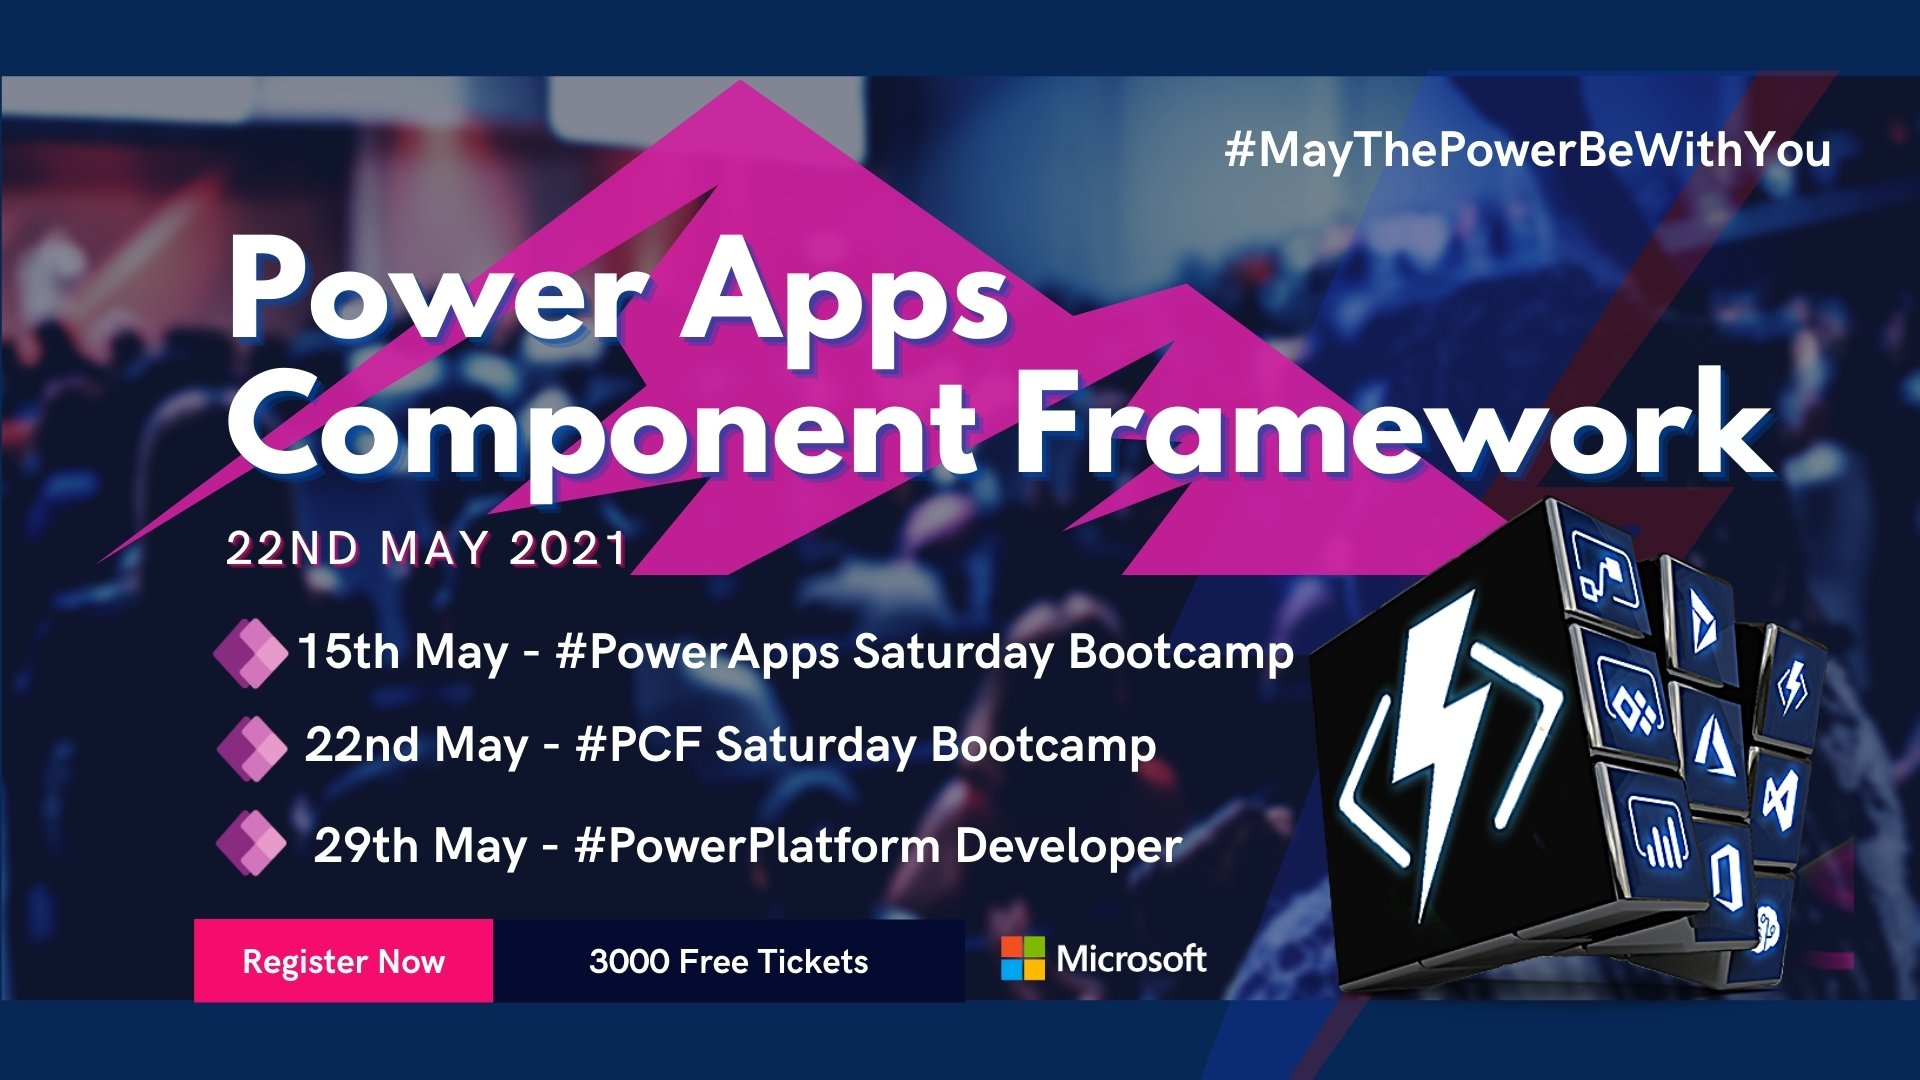 PCF Saturday Power Apps Component Framework 2021